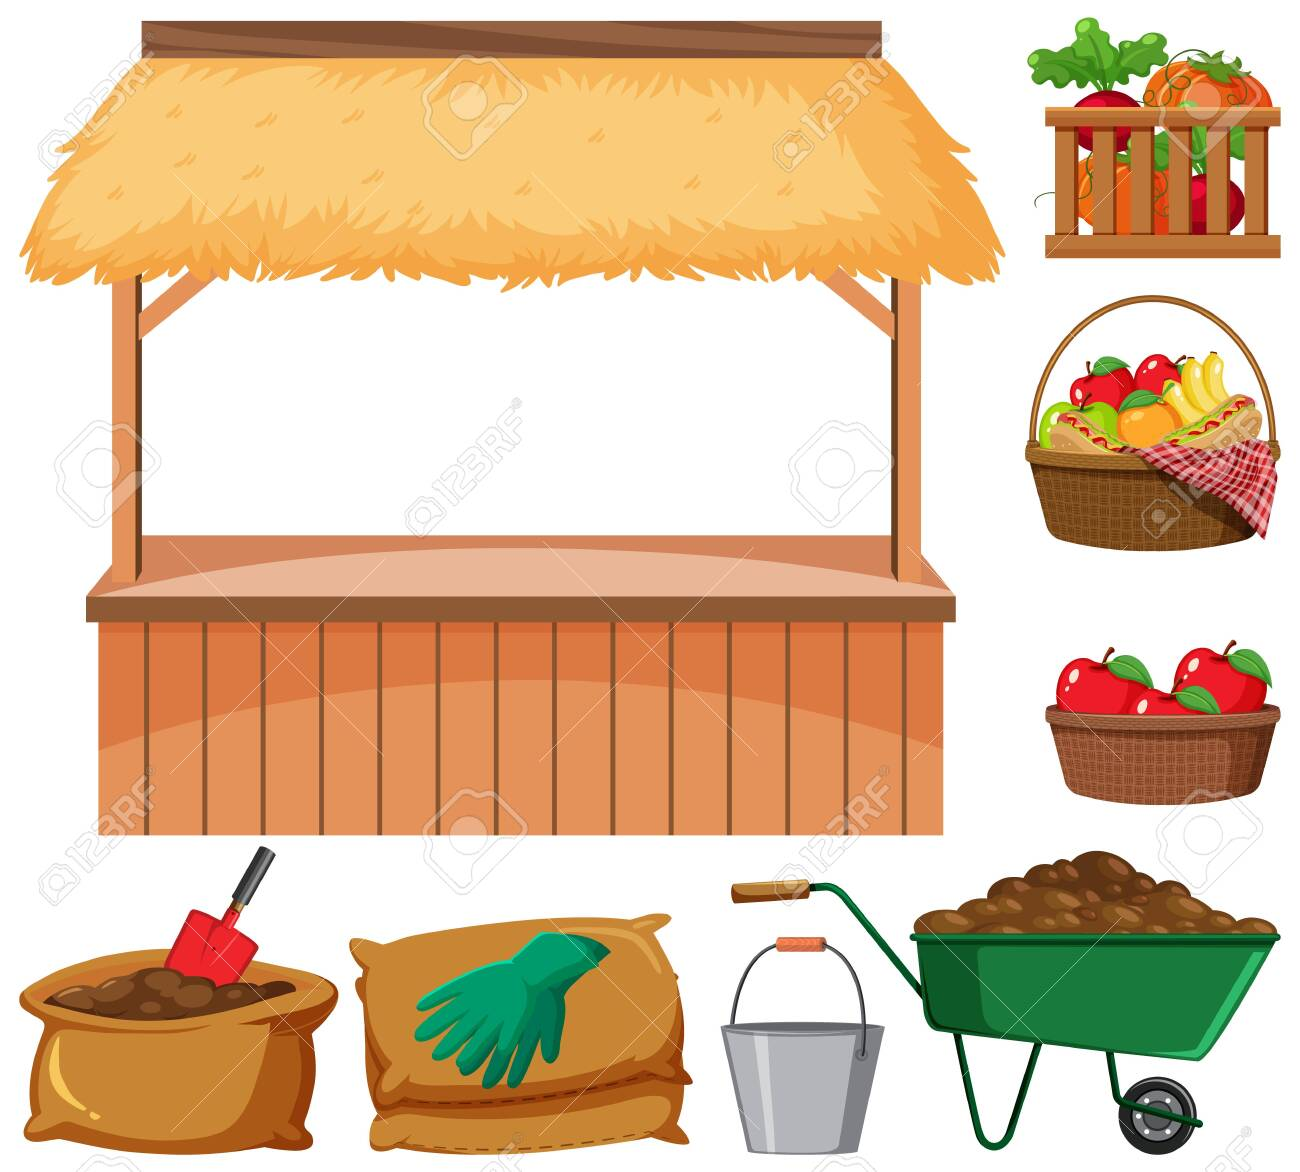 Food vendor and many farming items on white background illustration - 146618033